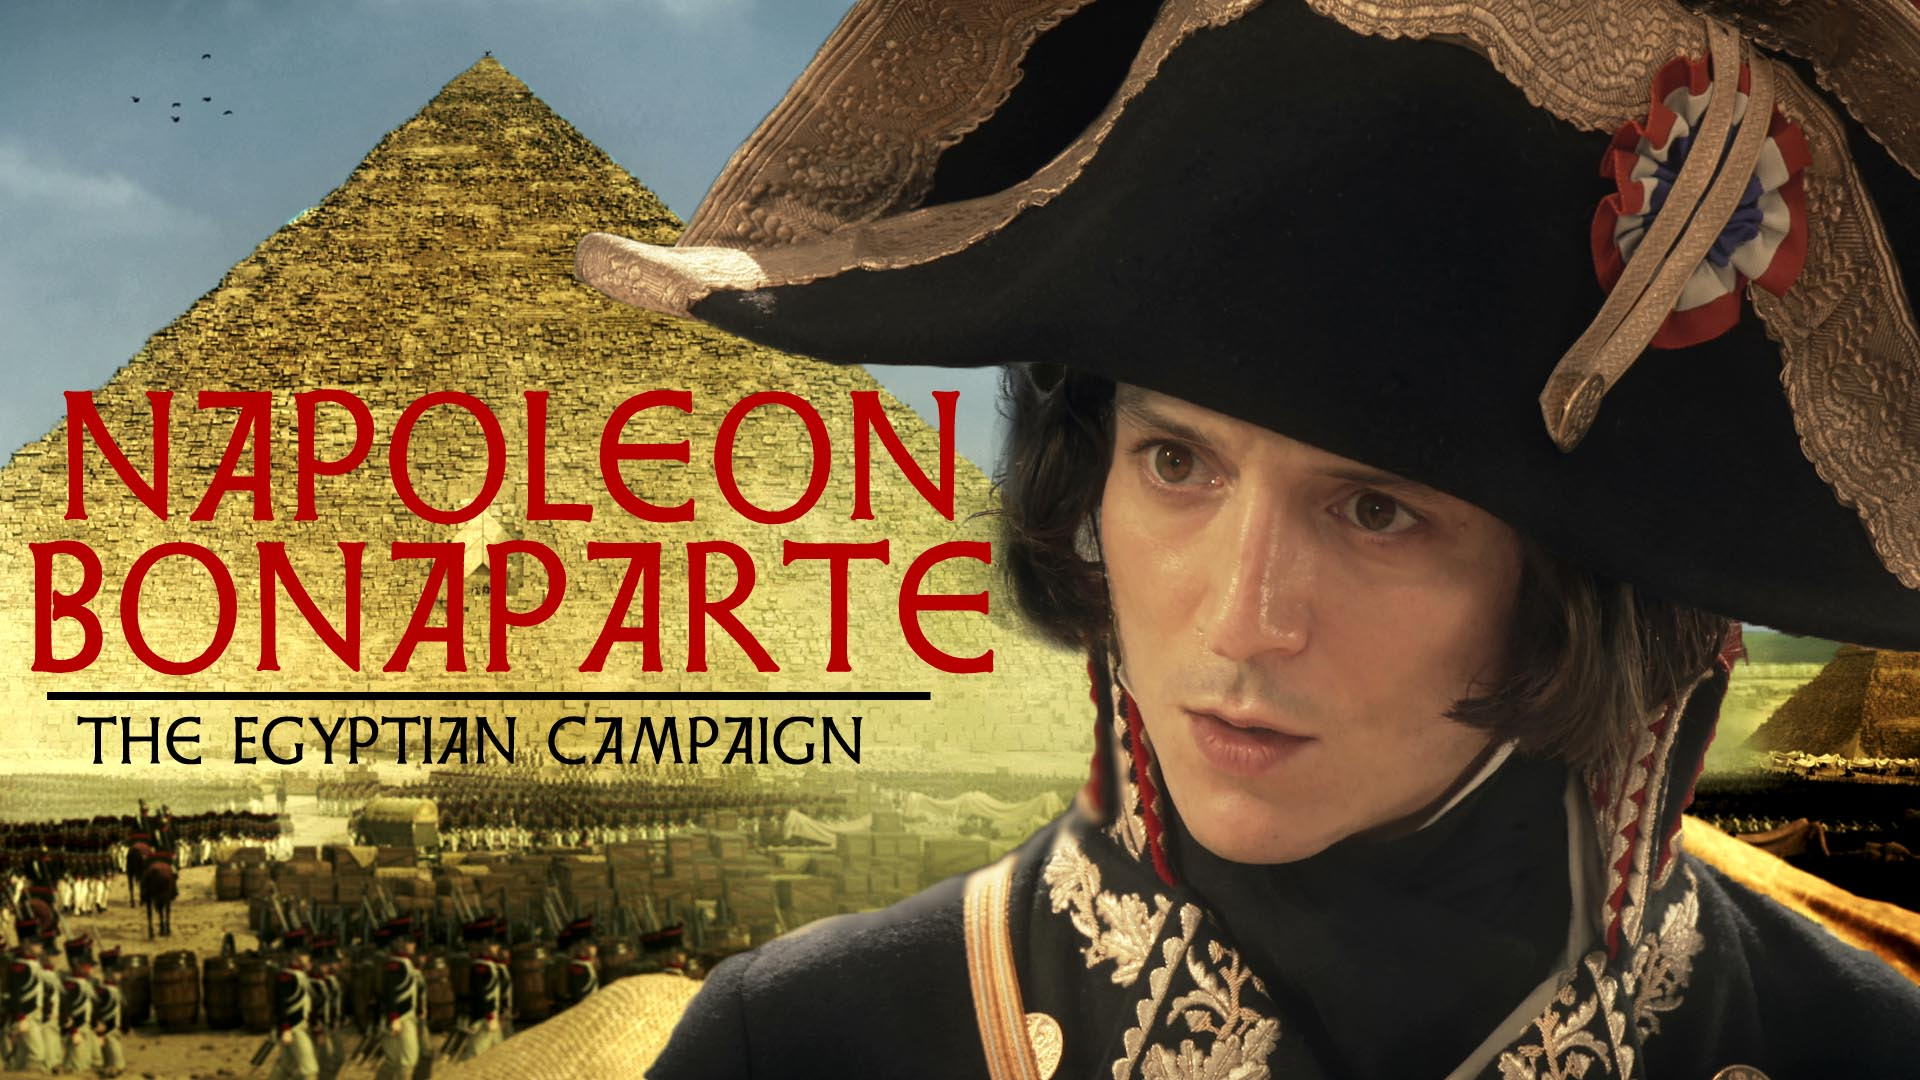 Napoleon Bonaparte: The Egyptian Campaign -